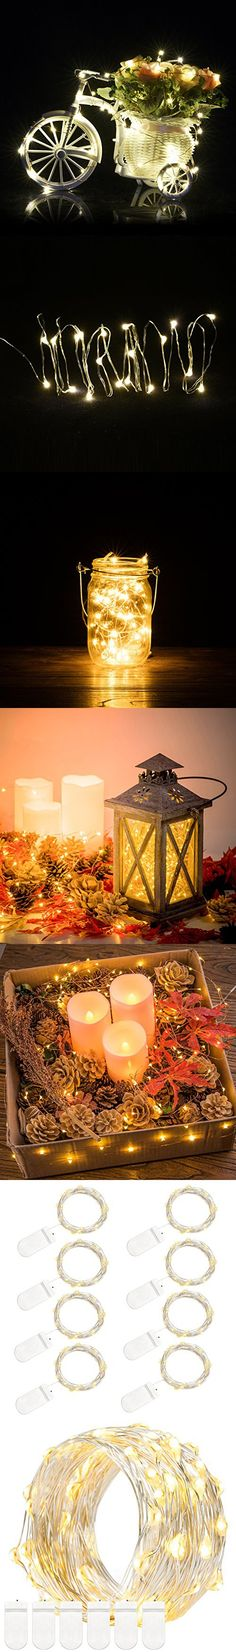 Battery operated warm white led rope light battery operated led battery operated warm white led rope light battery operated led rope lights pinterest mozeypictures Images